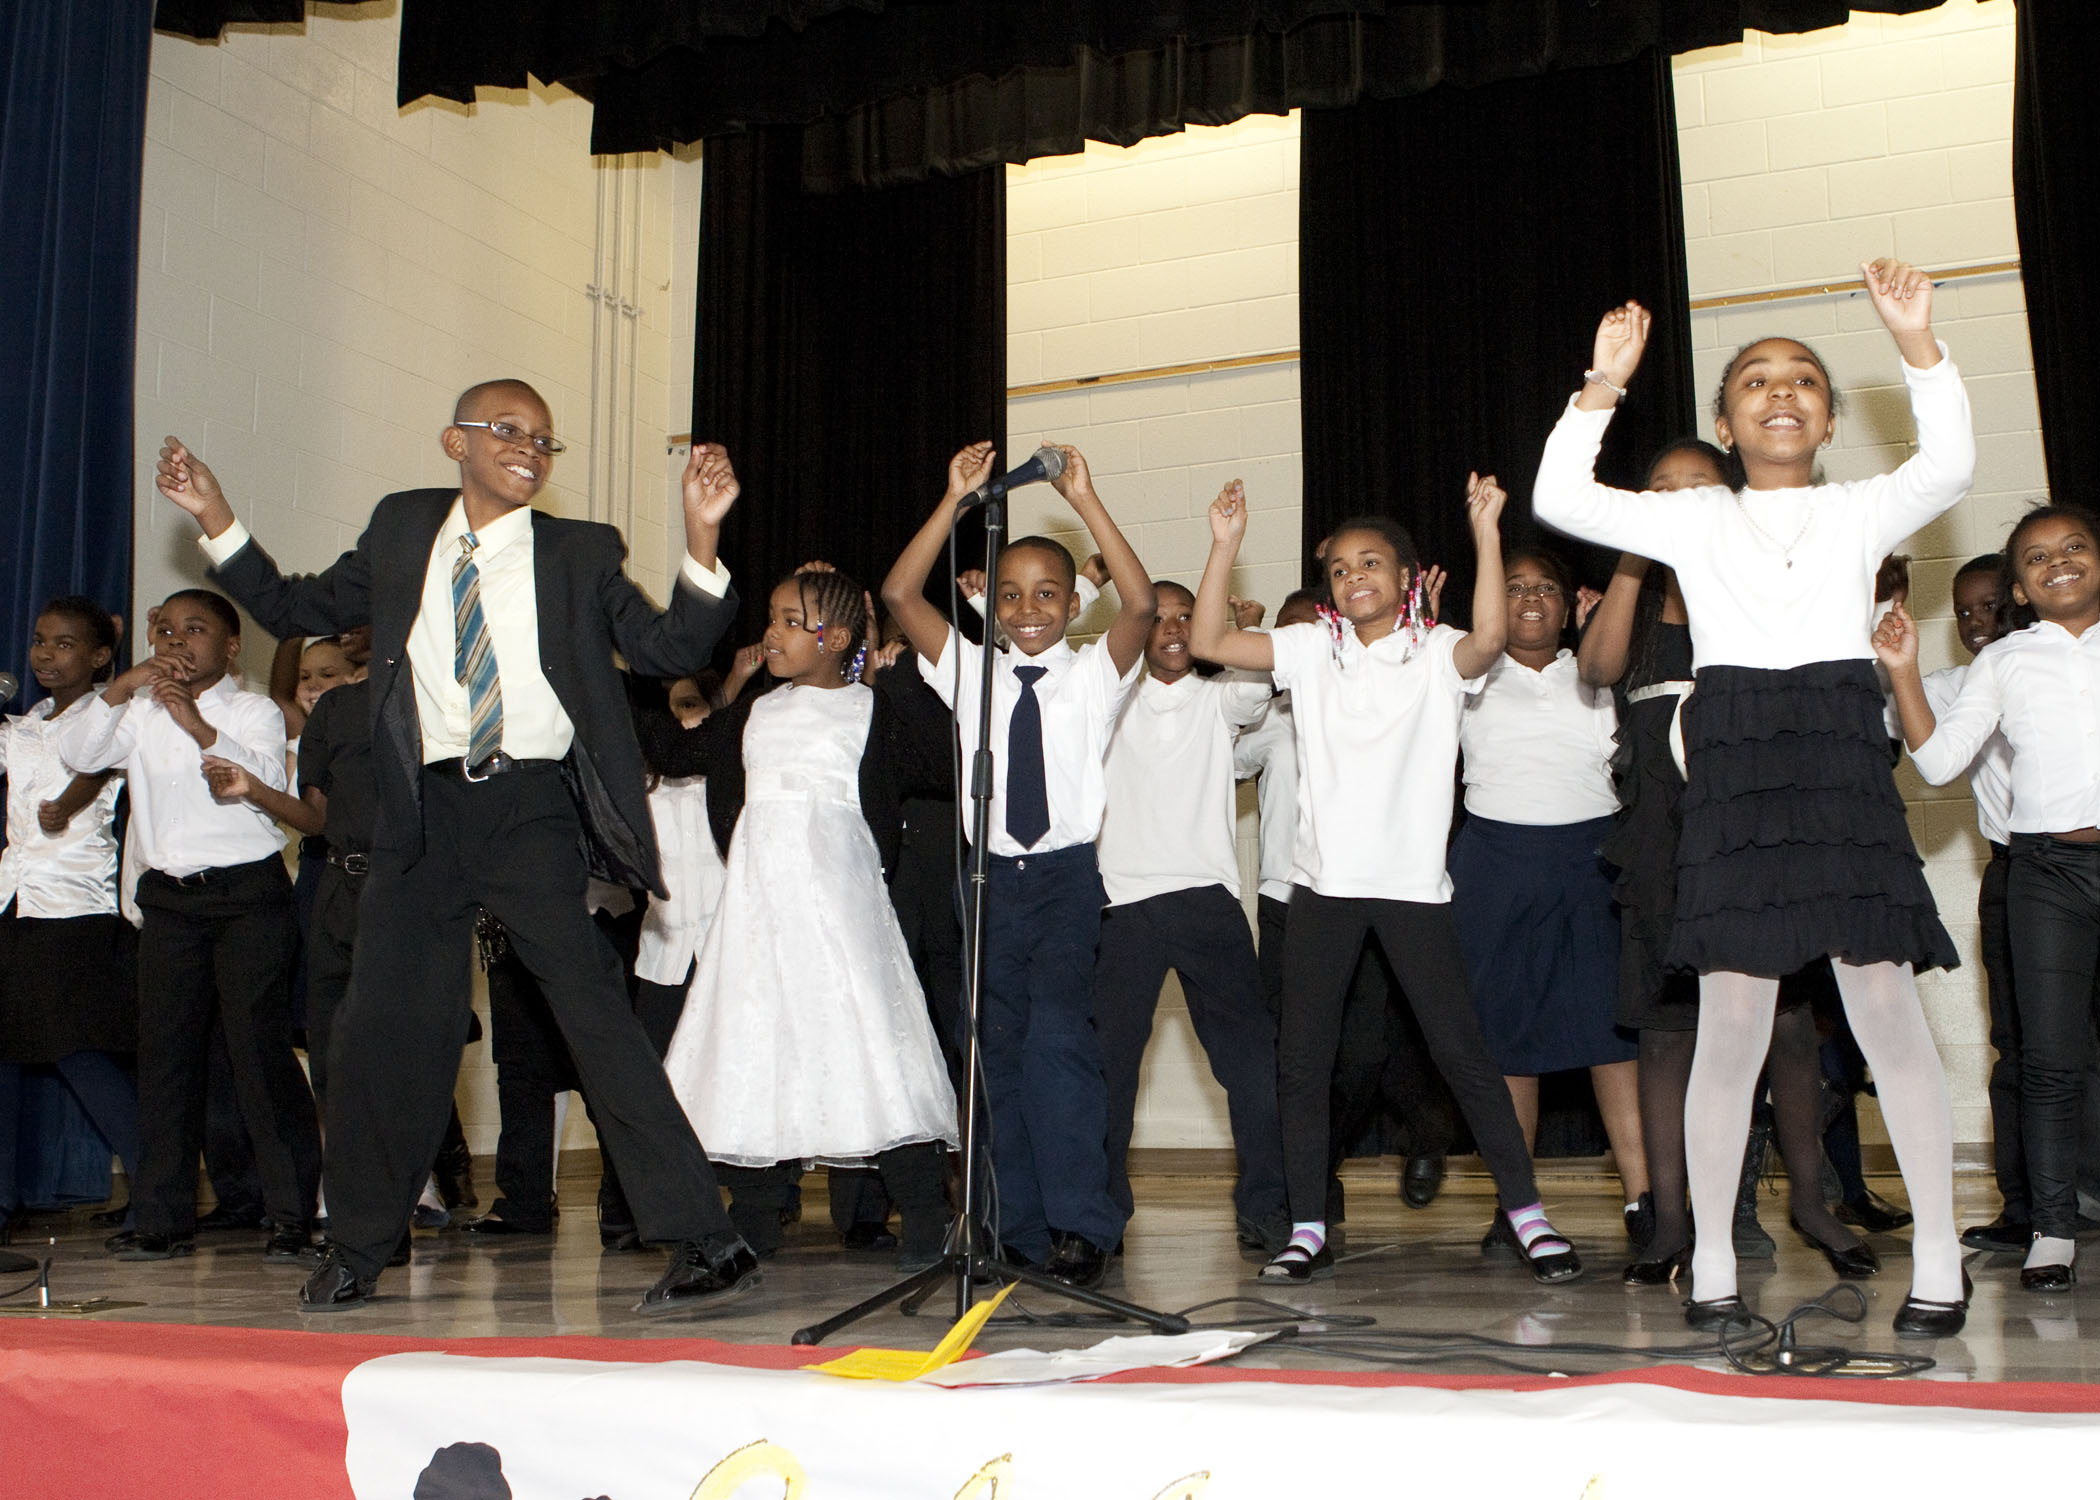 black history month talk up aps l p miles elementary celebrated black history month its annual program friday parents and community members were delighted by the talent of the